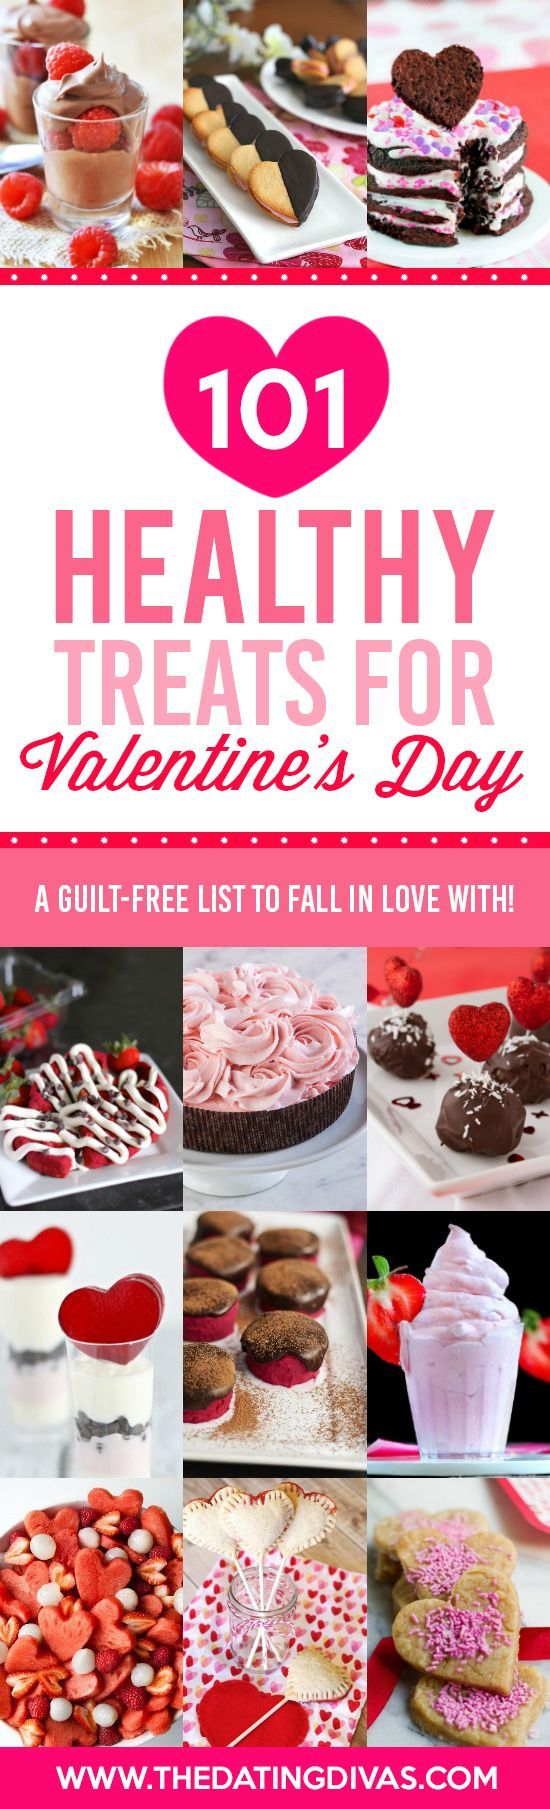 Don't ruin those New Year's Resolutions. TONS of HEALTHY treat and dessert ideas for Valentine's Day. Look all look divine!